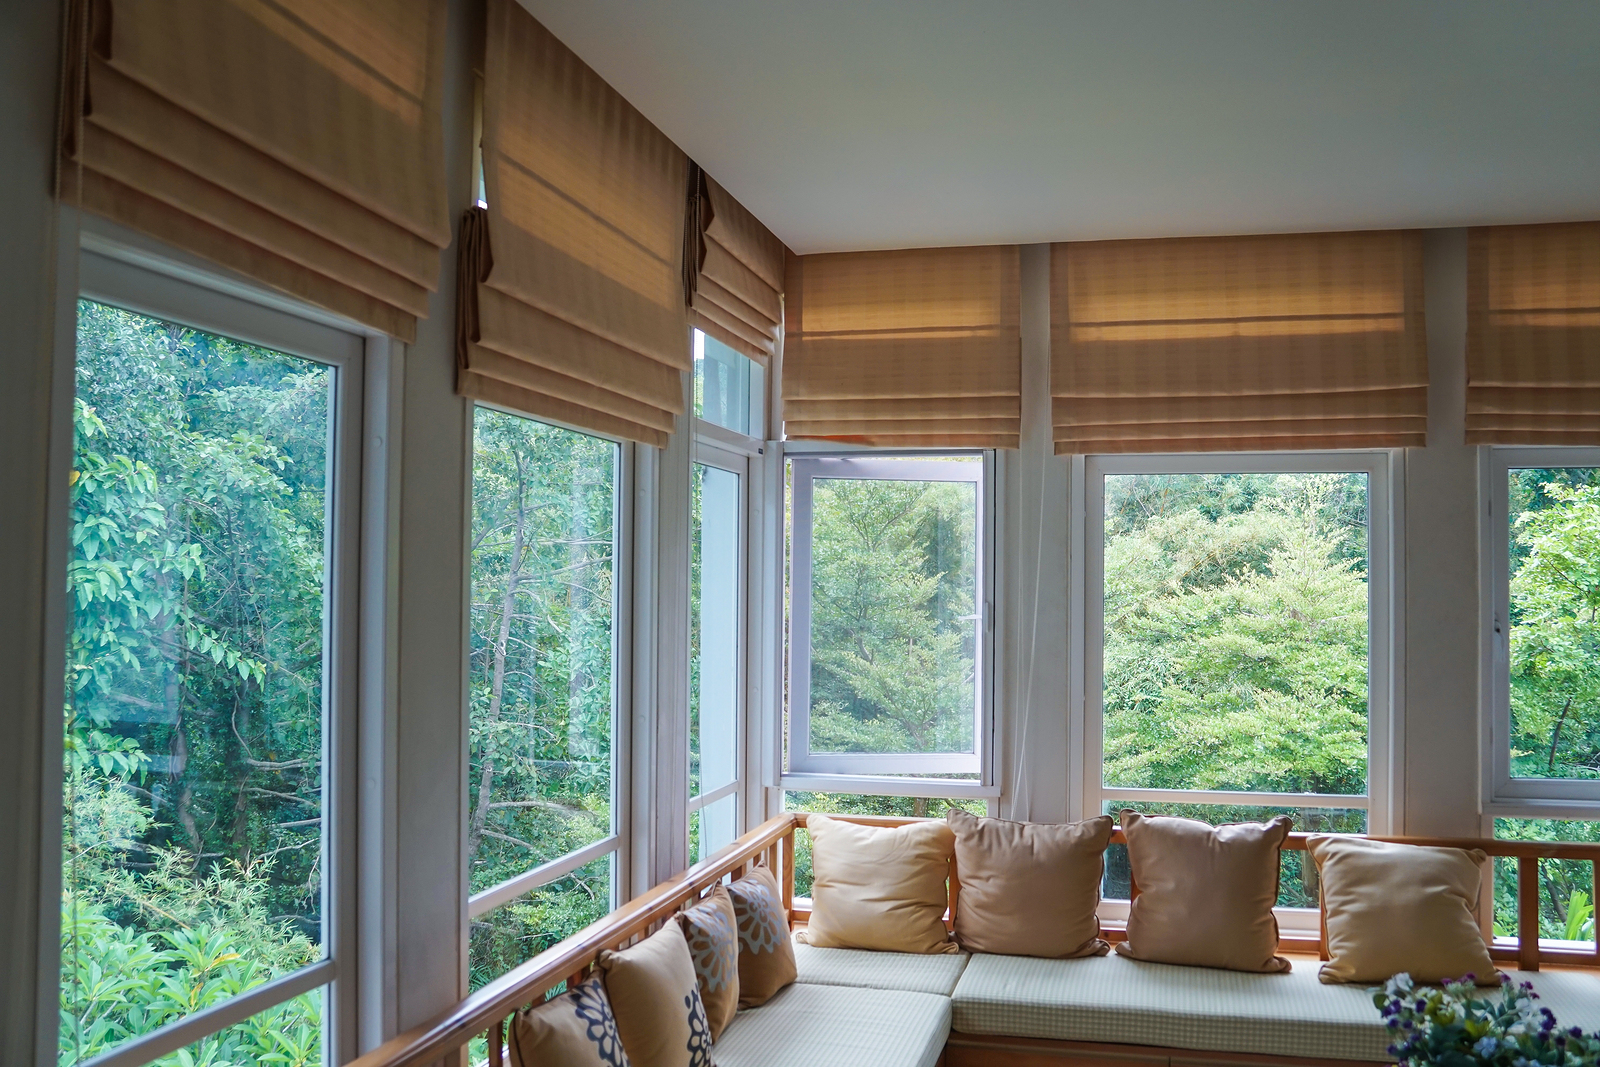 Brown Roman Blind Shade Curtain Tree Forest Mountain Background